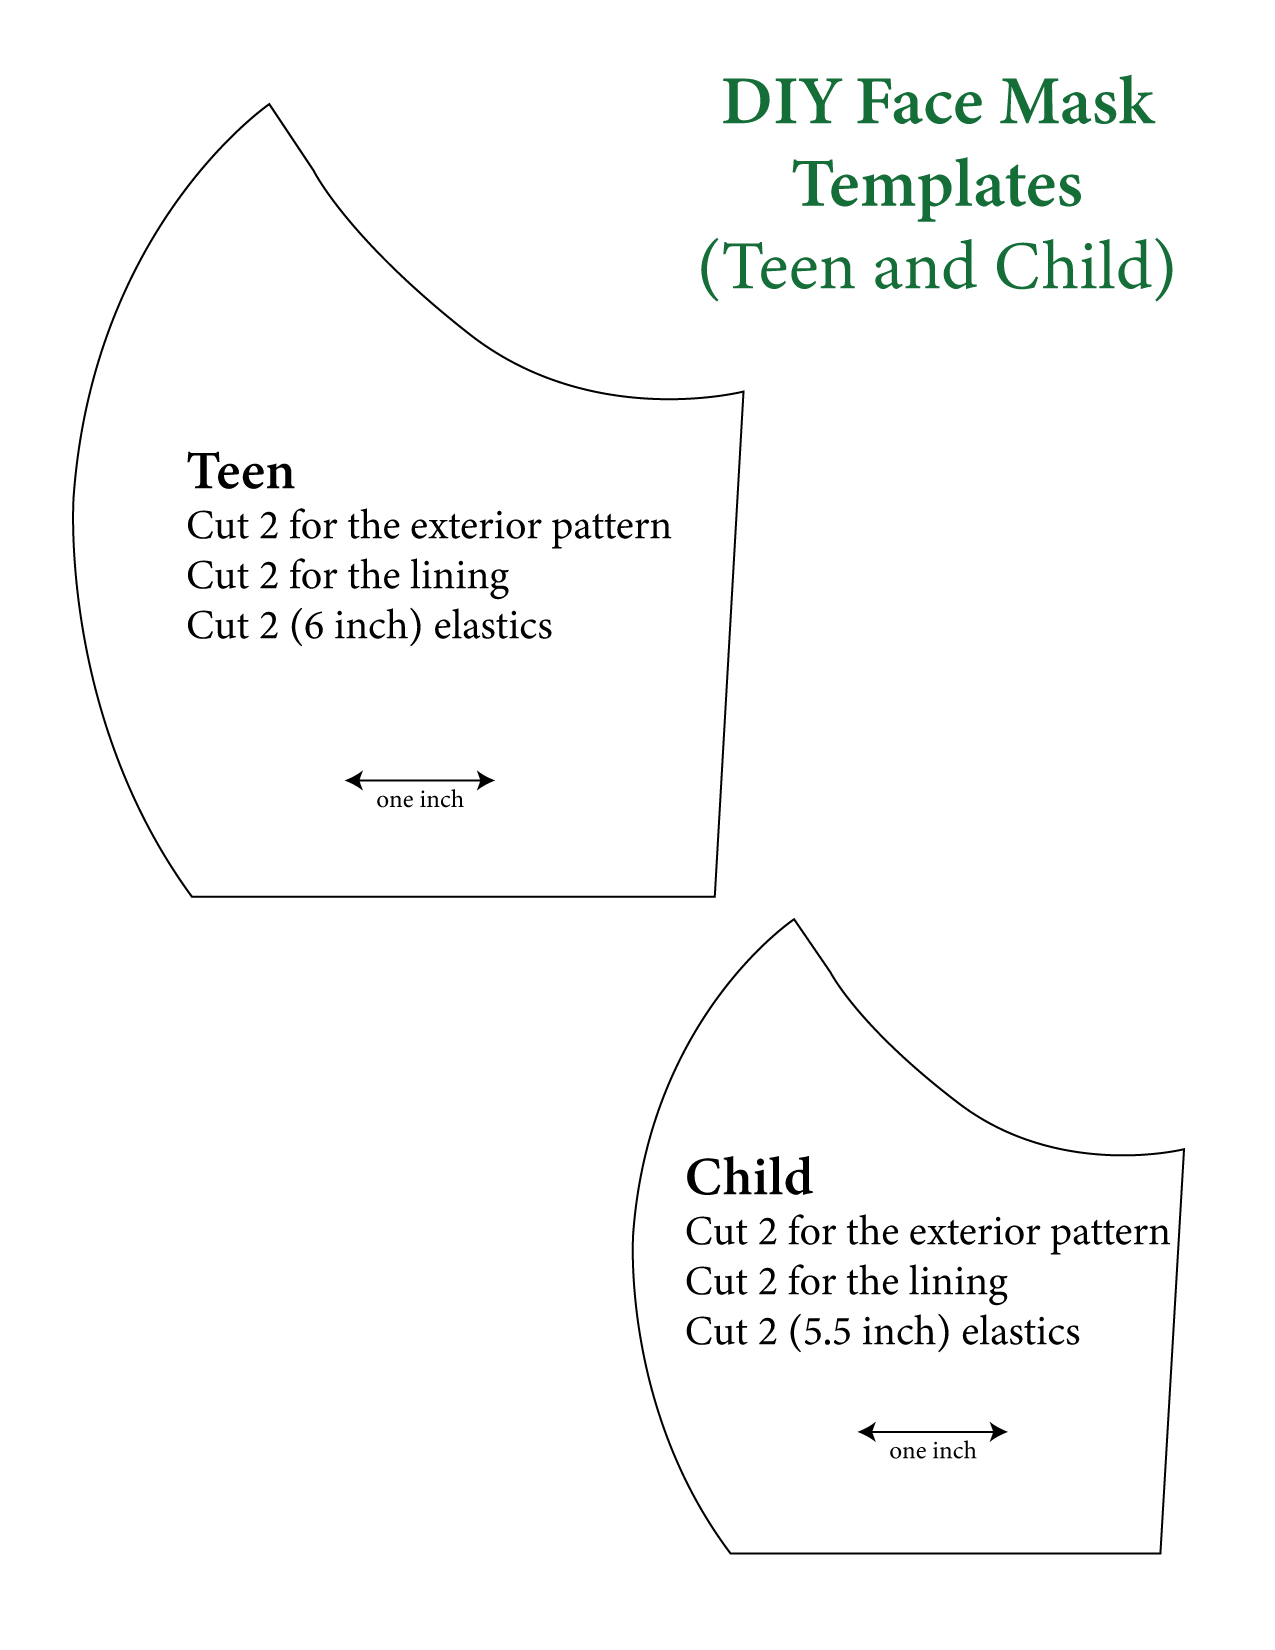 Teen and child templates